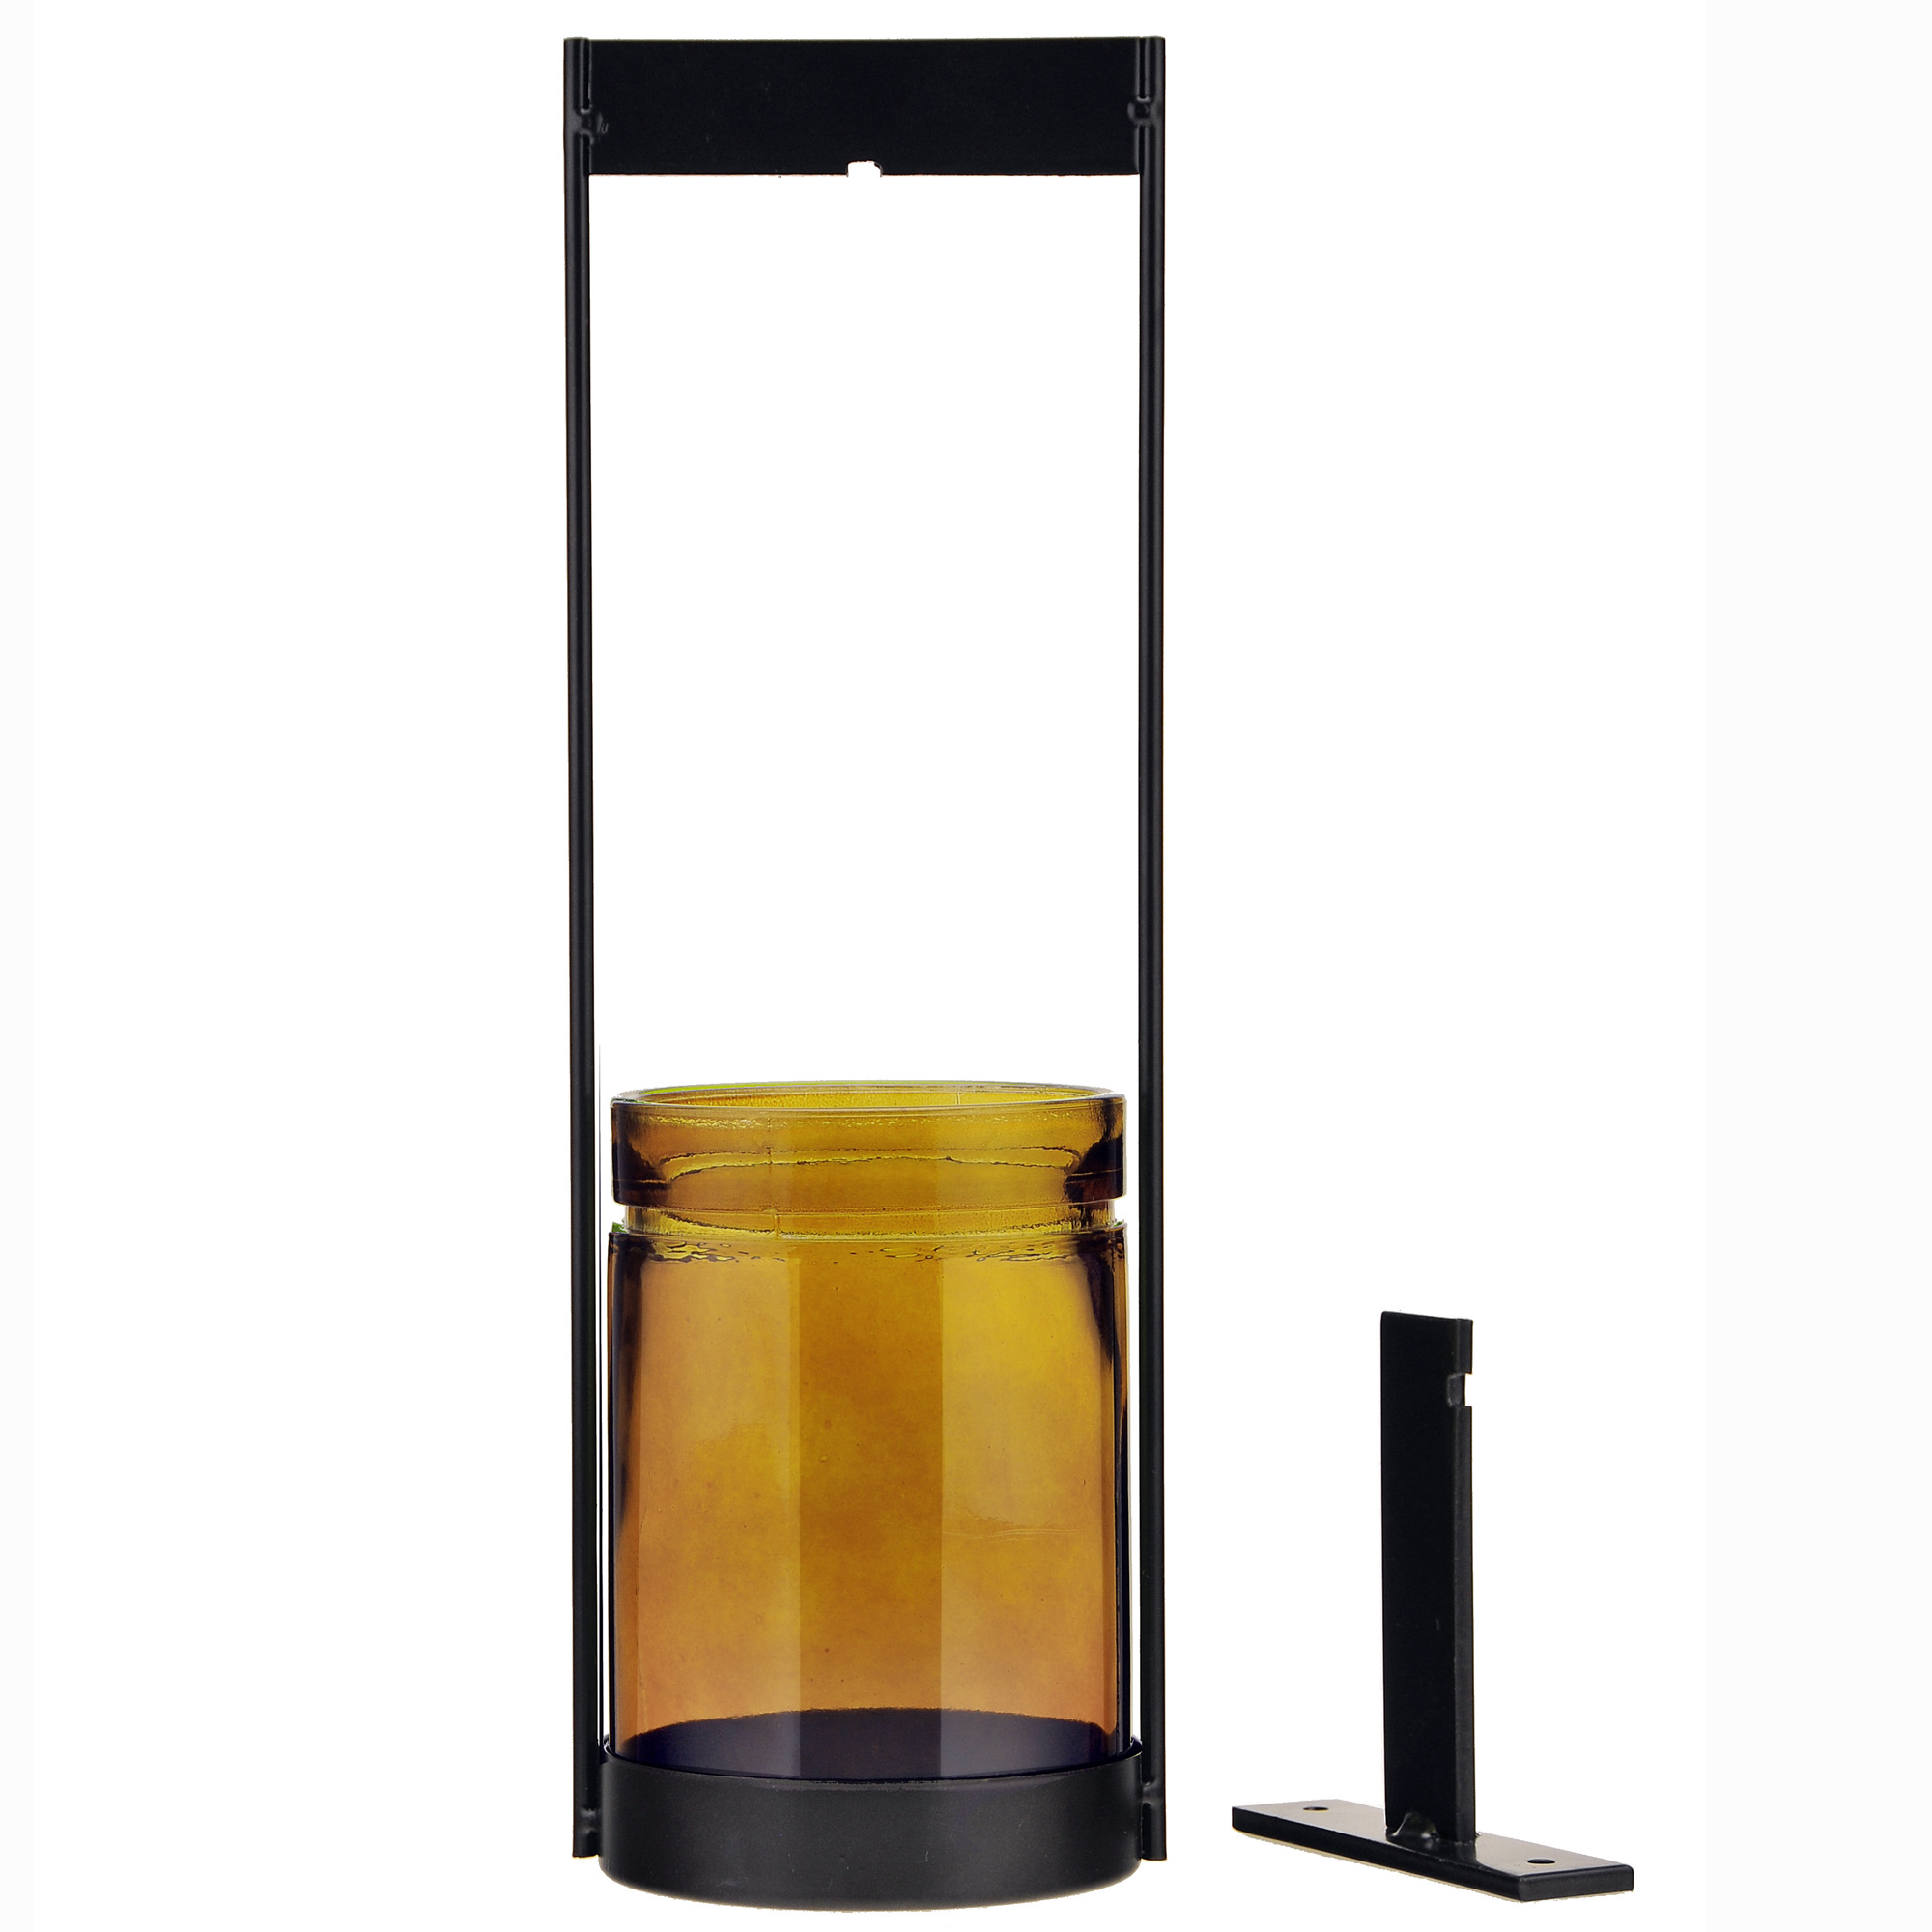 c0eef6311ba7 Couronne Co Verona Hanging Glass Container, 14.5 inches tall,  M304-200-00-P, 26.6 Ounce Capacity, Clear